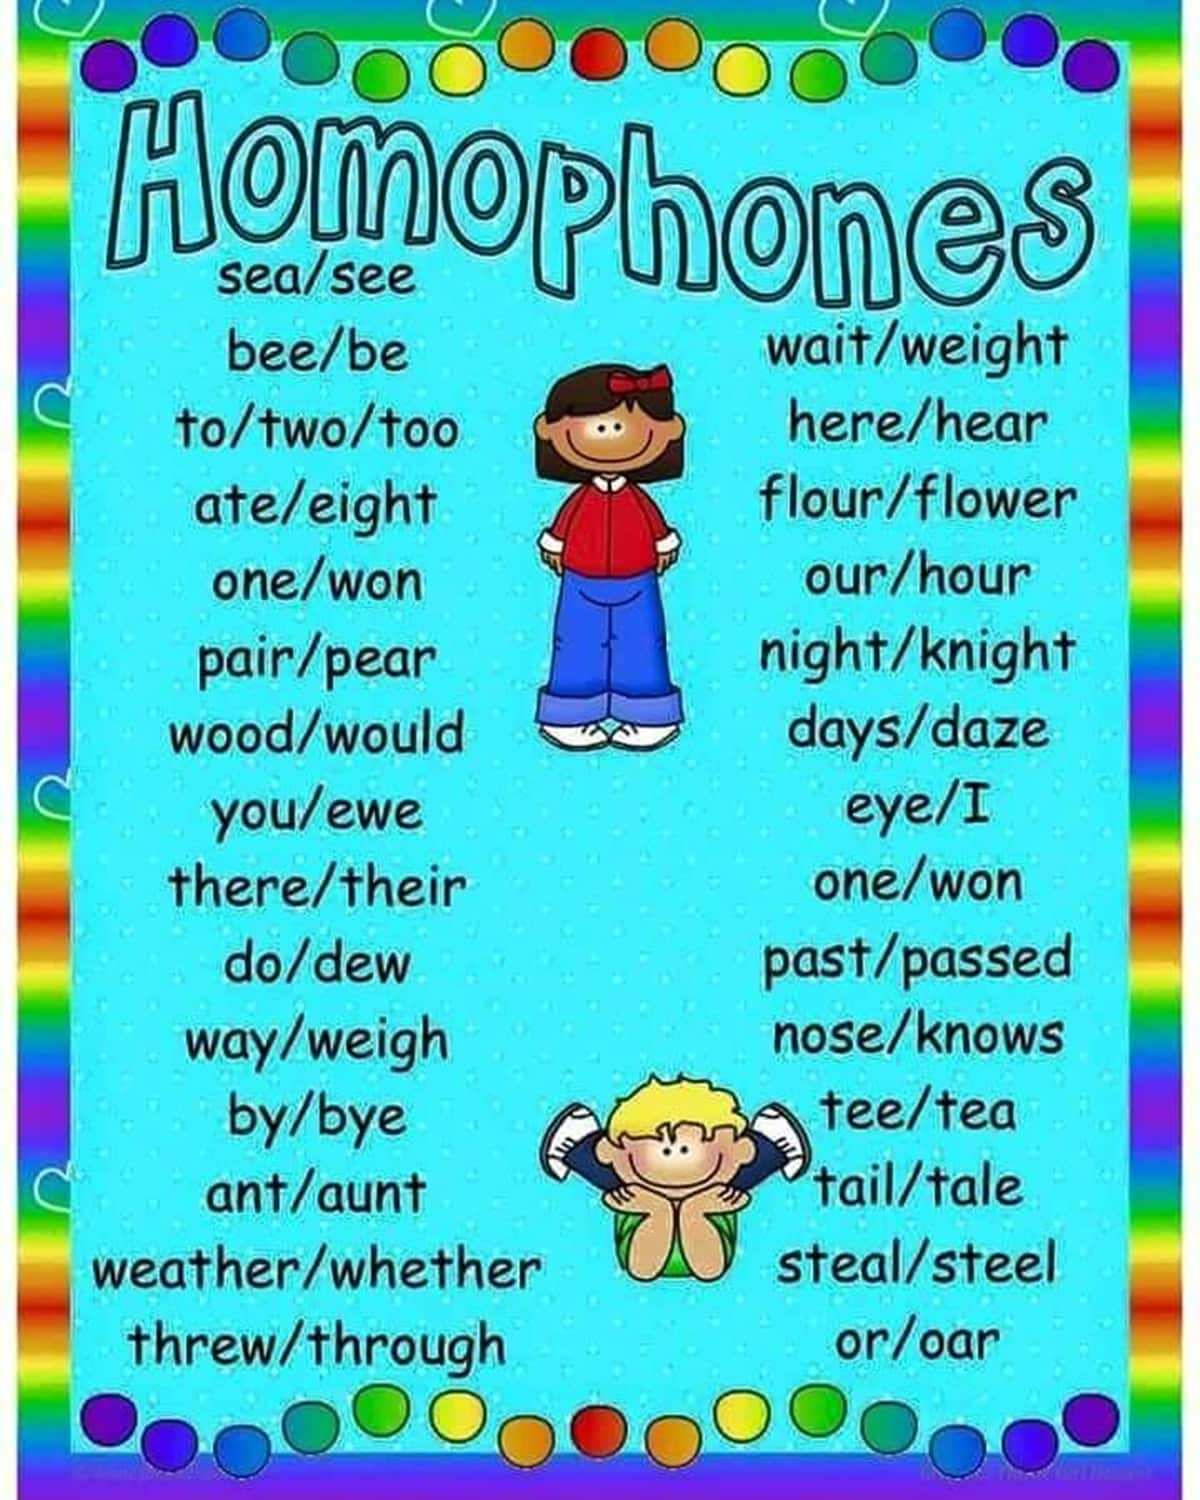 Commonly Confused Homophones